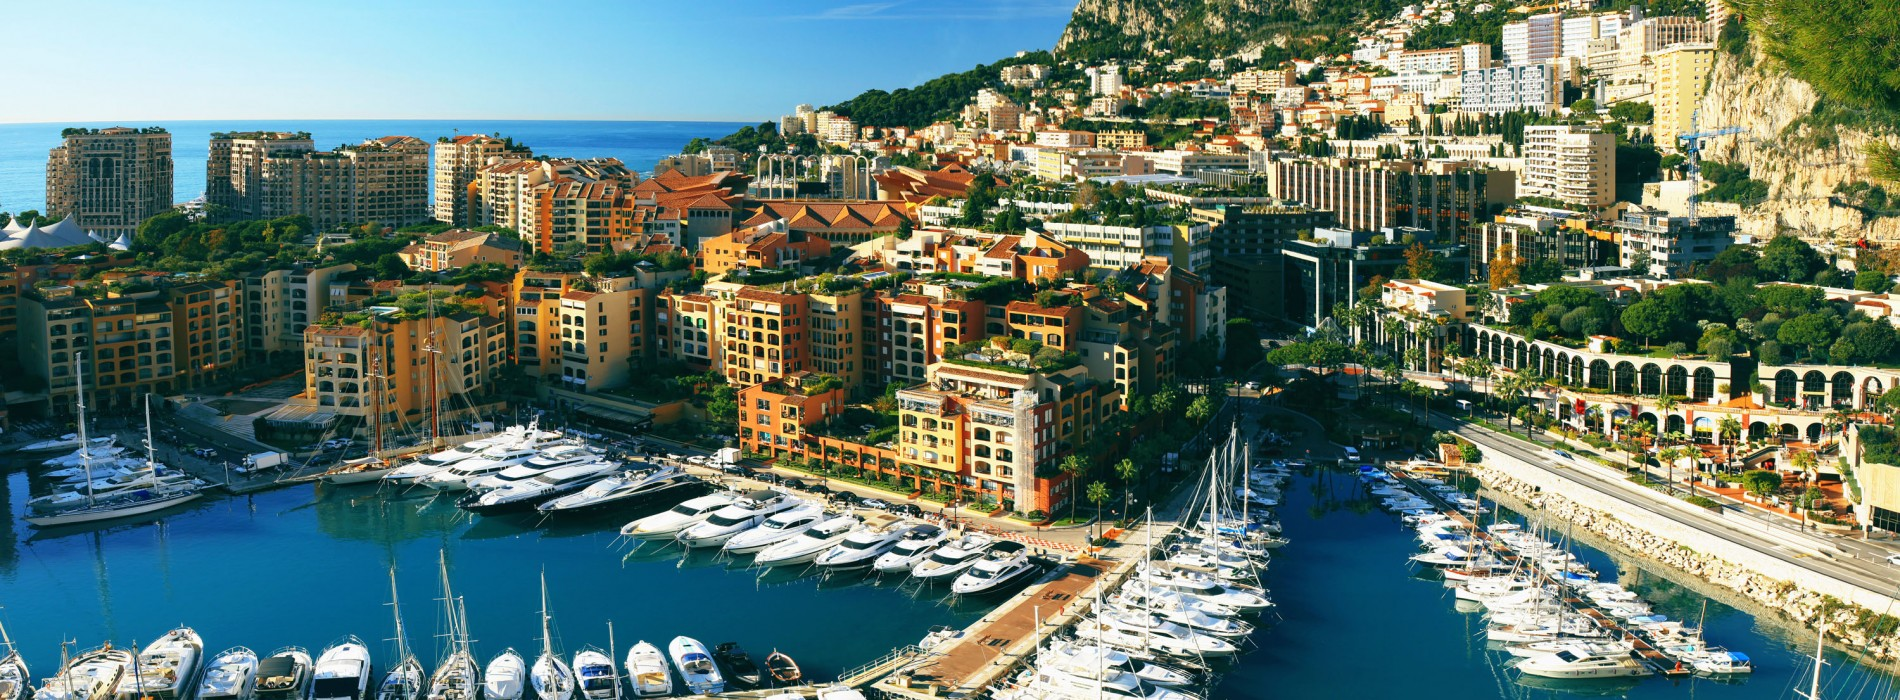 Enjoy Summer Holidays in the Heart of Europe